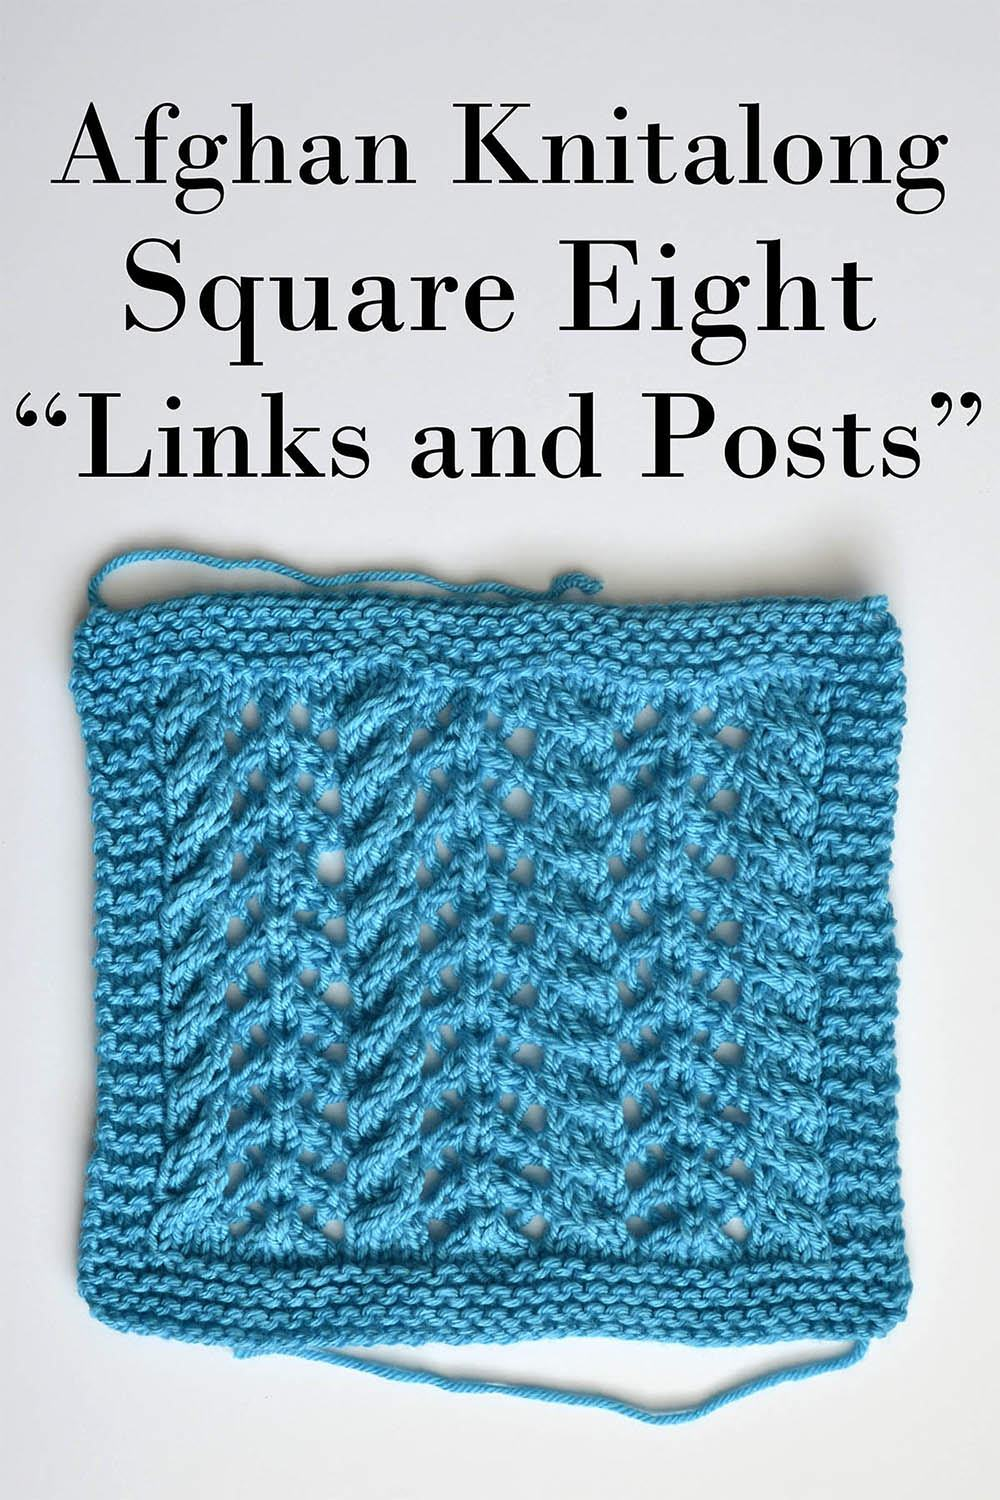 Afghan Knitalong Square 8 - Links and Posts Pattern Universal Yarn